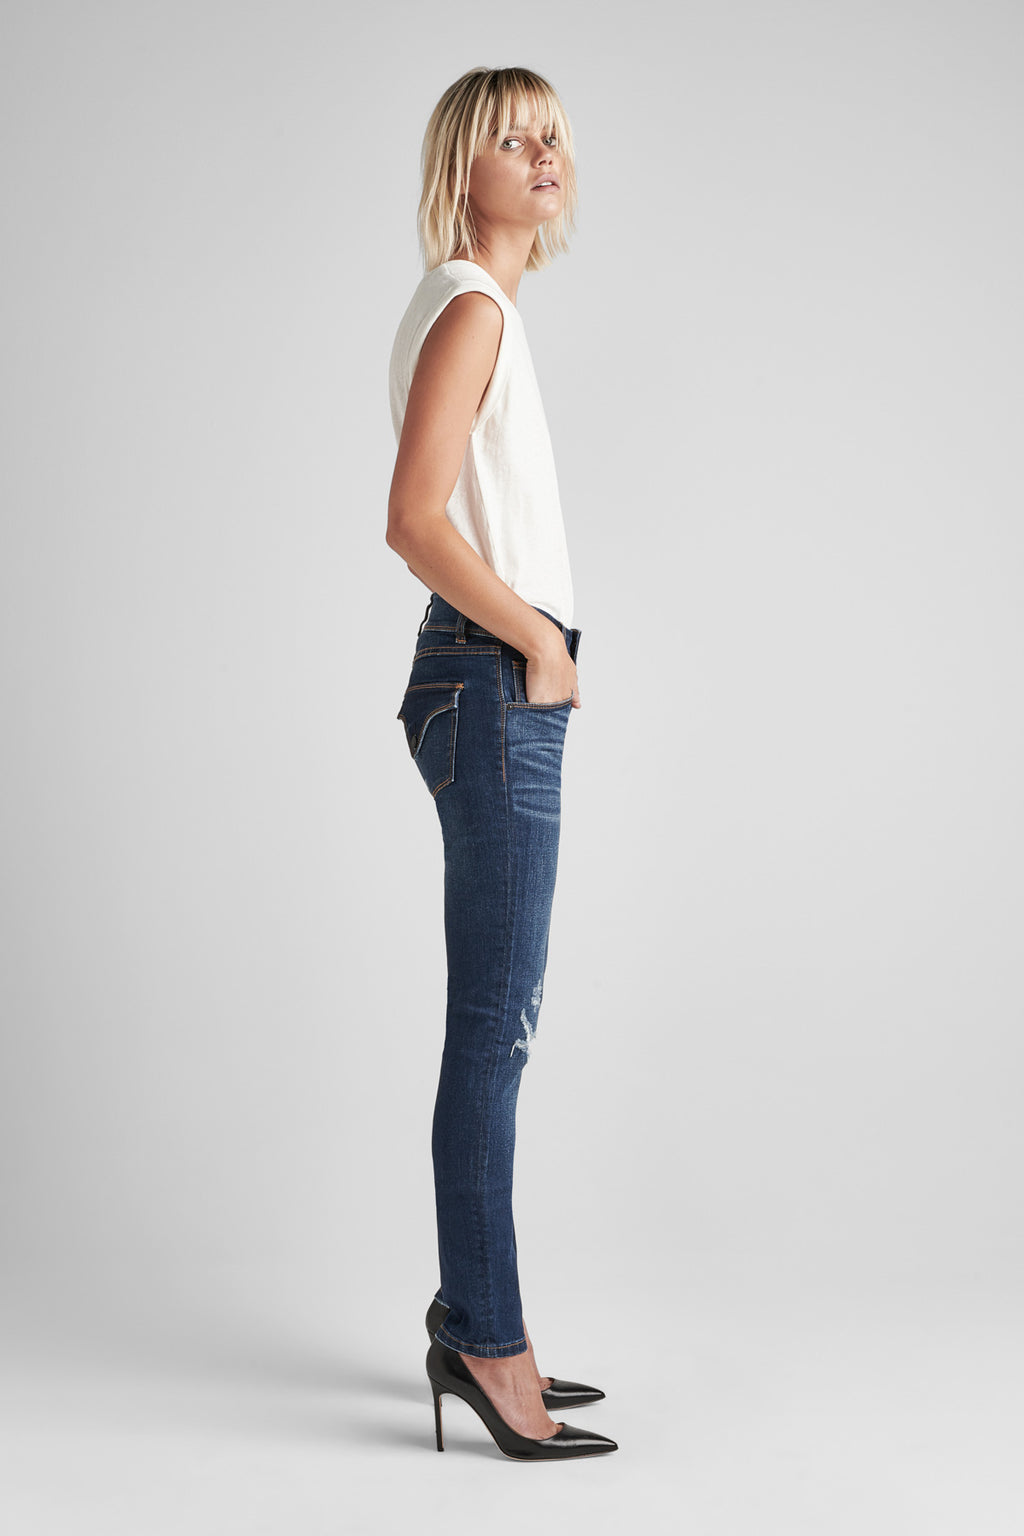 COLLIN MIDRISE SKINNY JEAN - DEST. POPULAR (DESTRUCTED) - Image 2